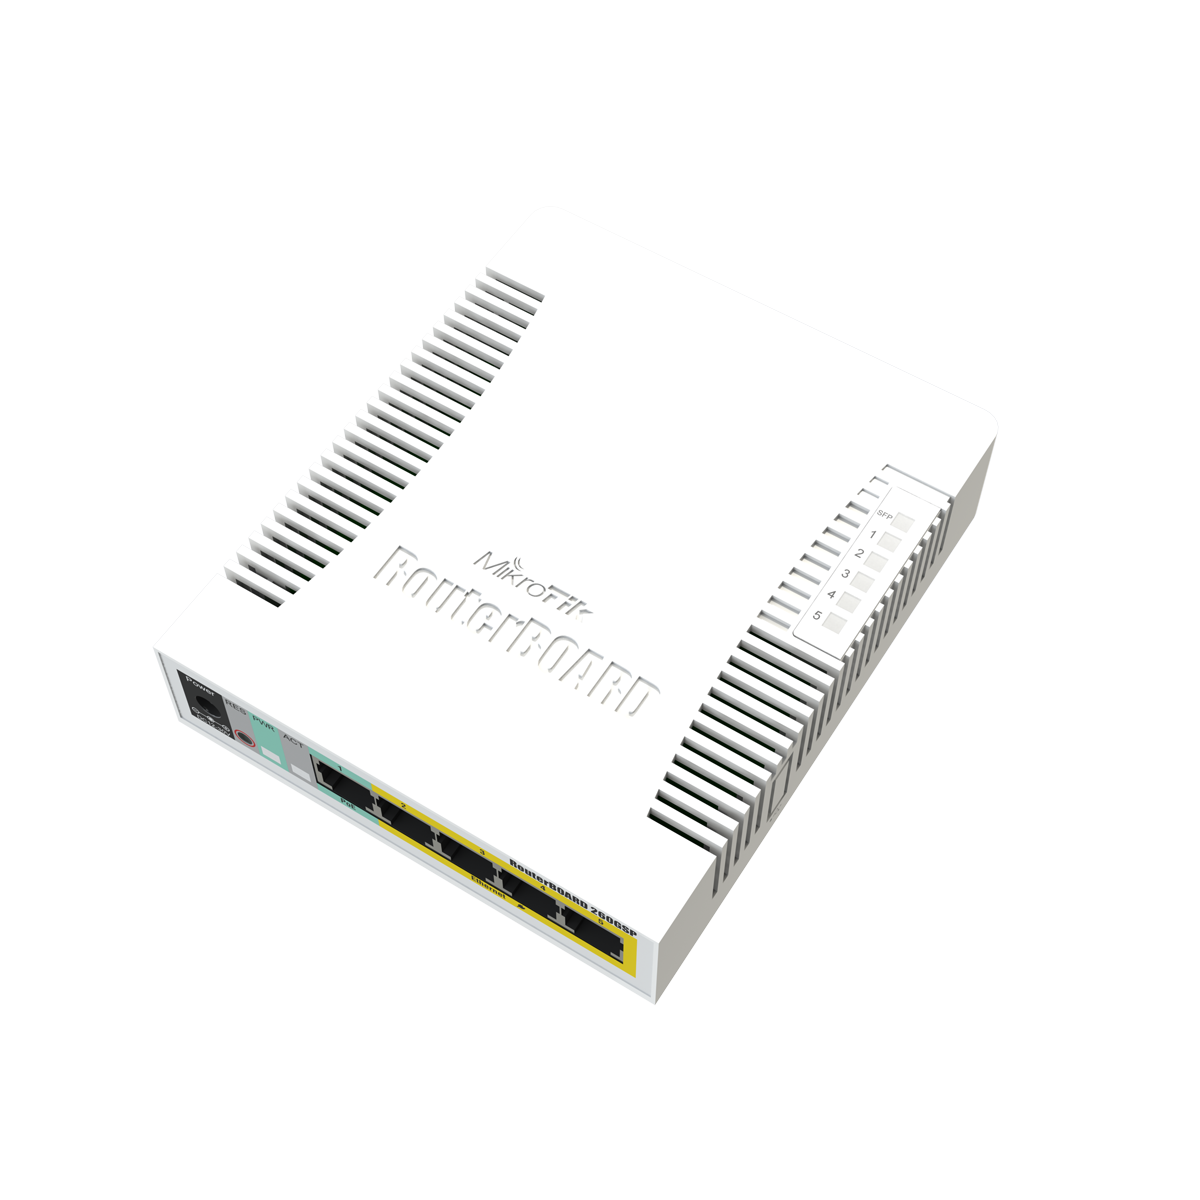 mikrotik routerboard rb260gsp smart gigabit switch with five 100  1000 ethernet ports  poe